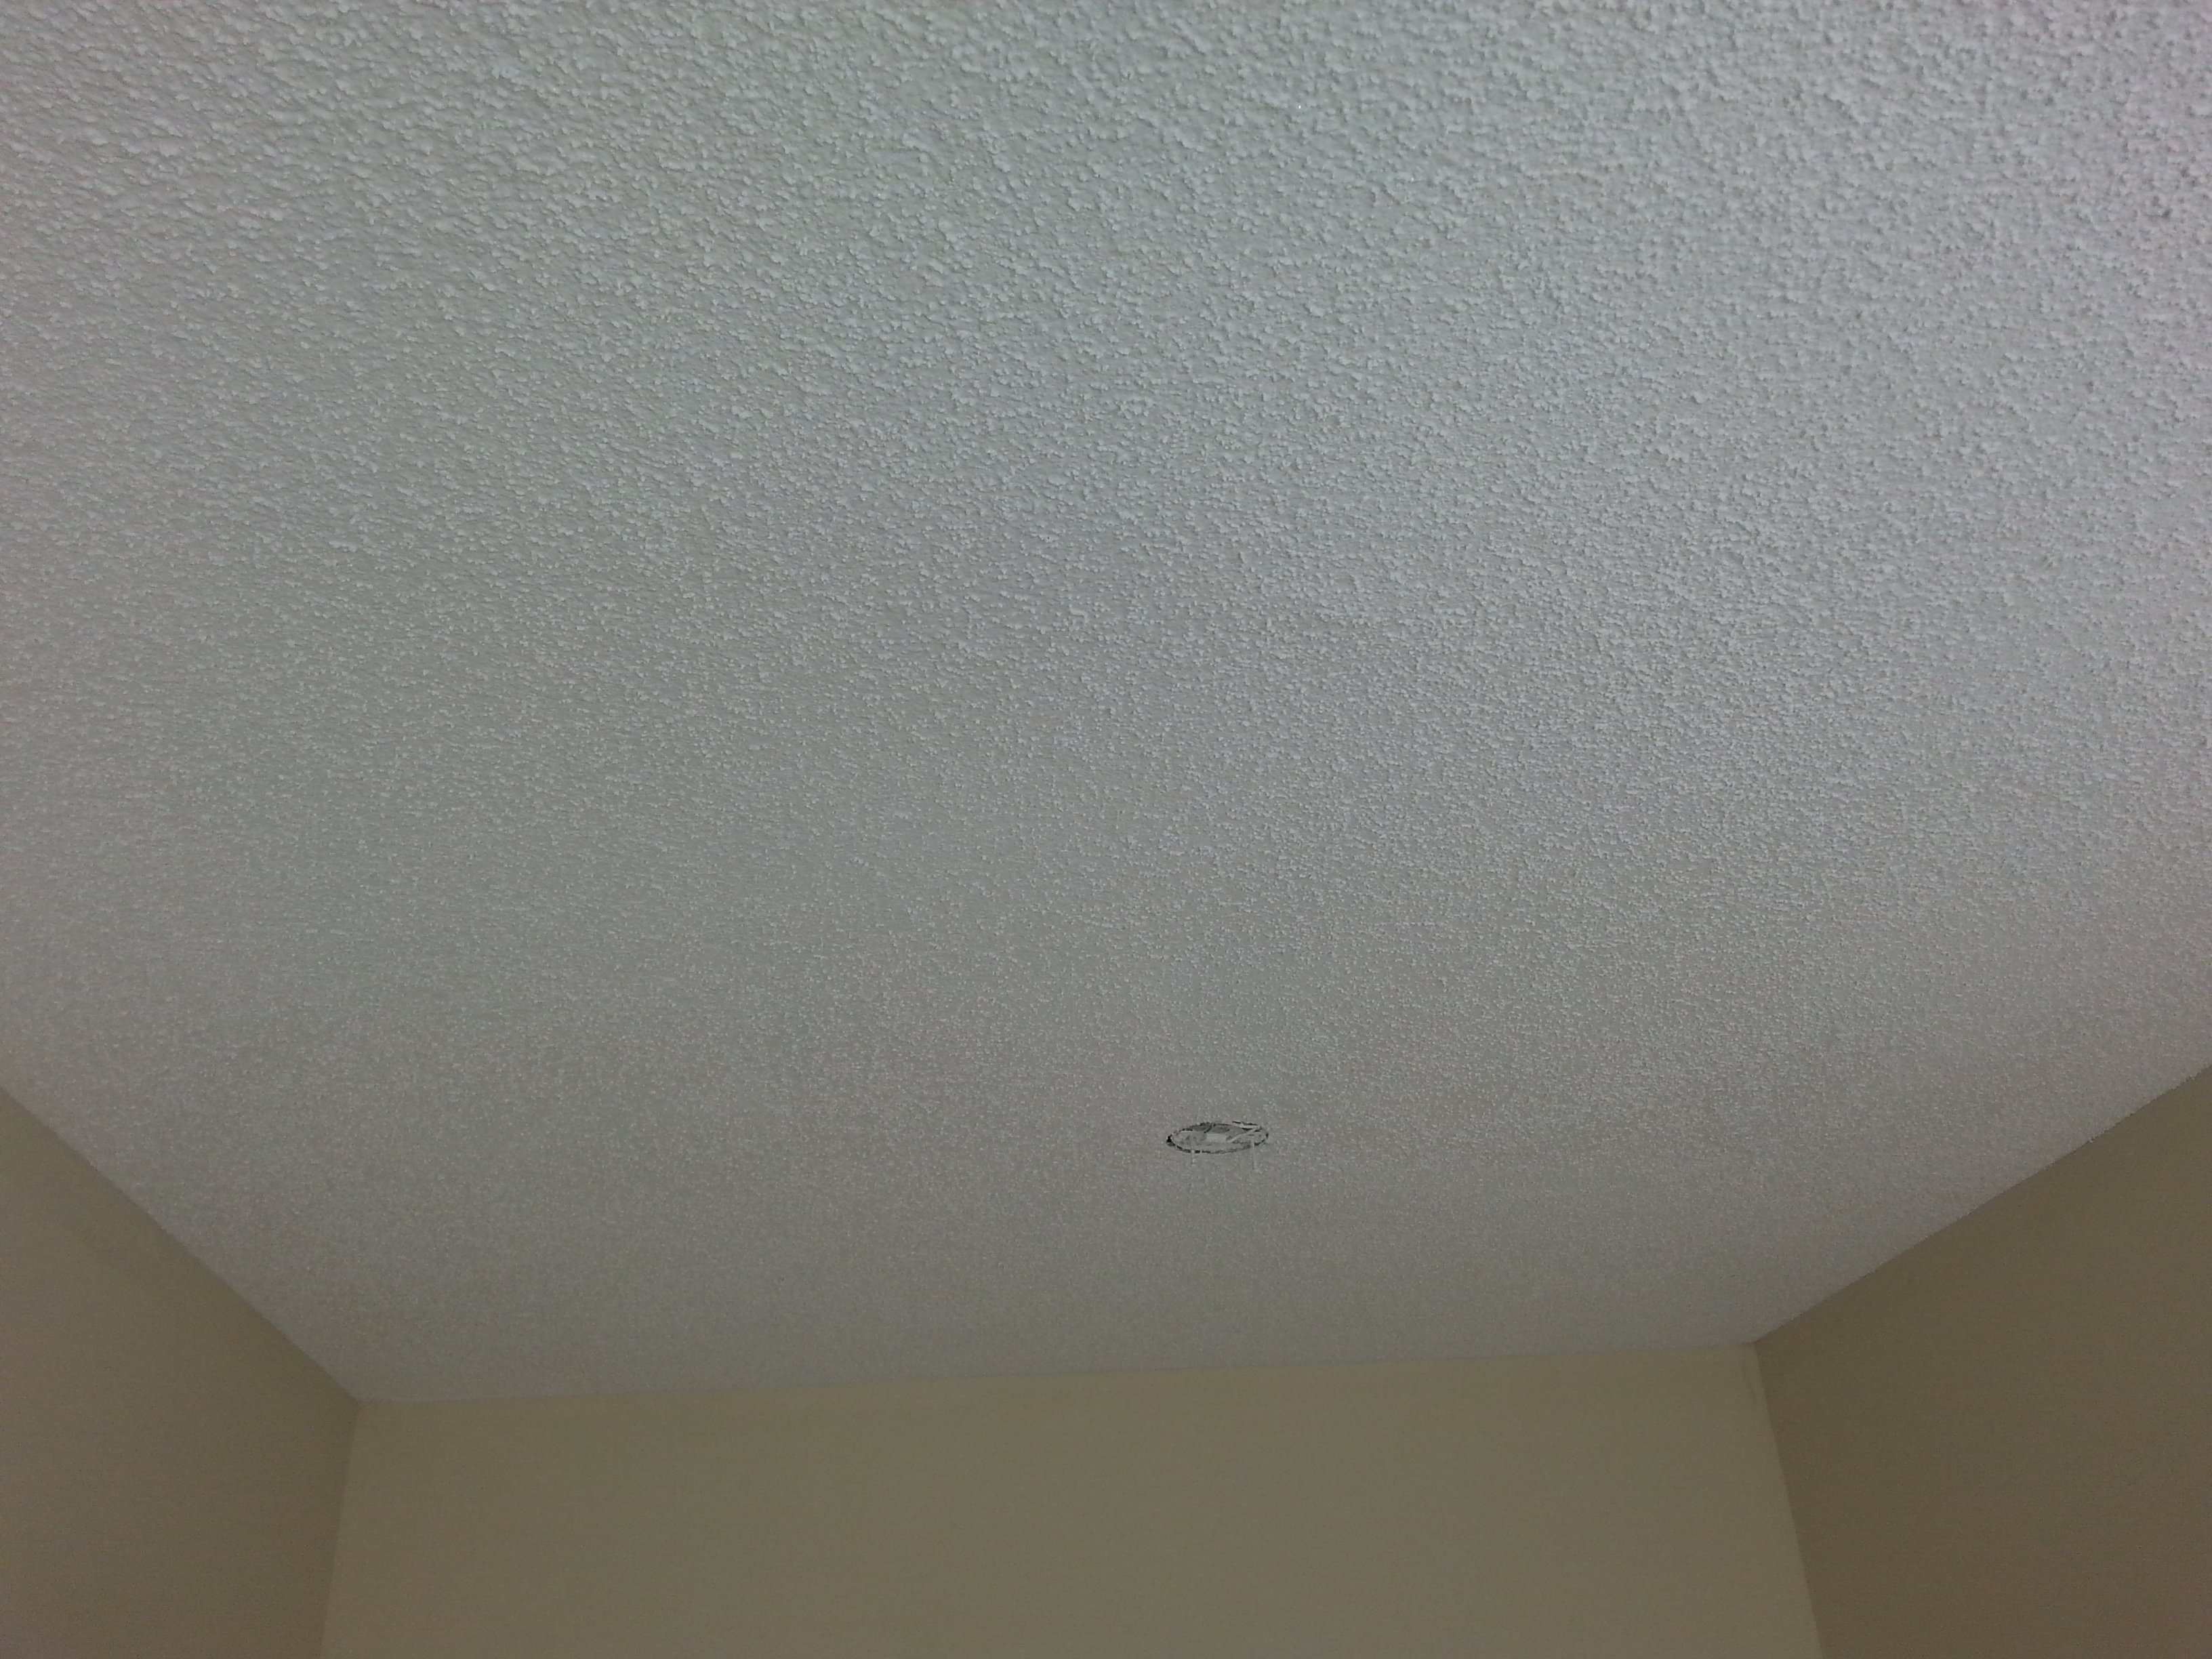 Water Stains on Your Ceiling - Common Causes & Solution